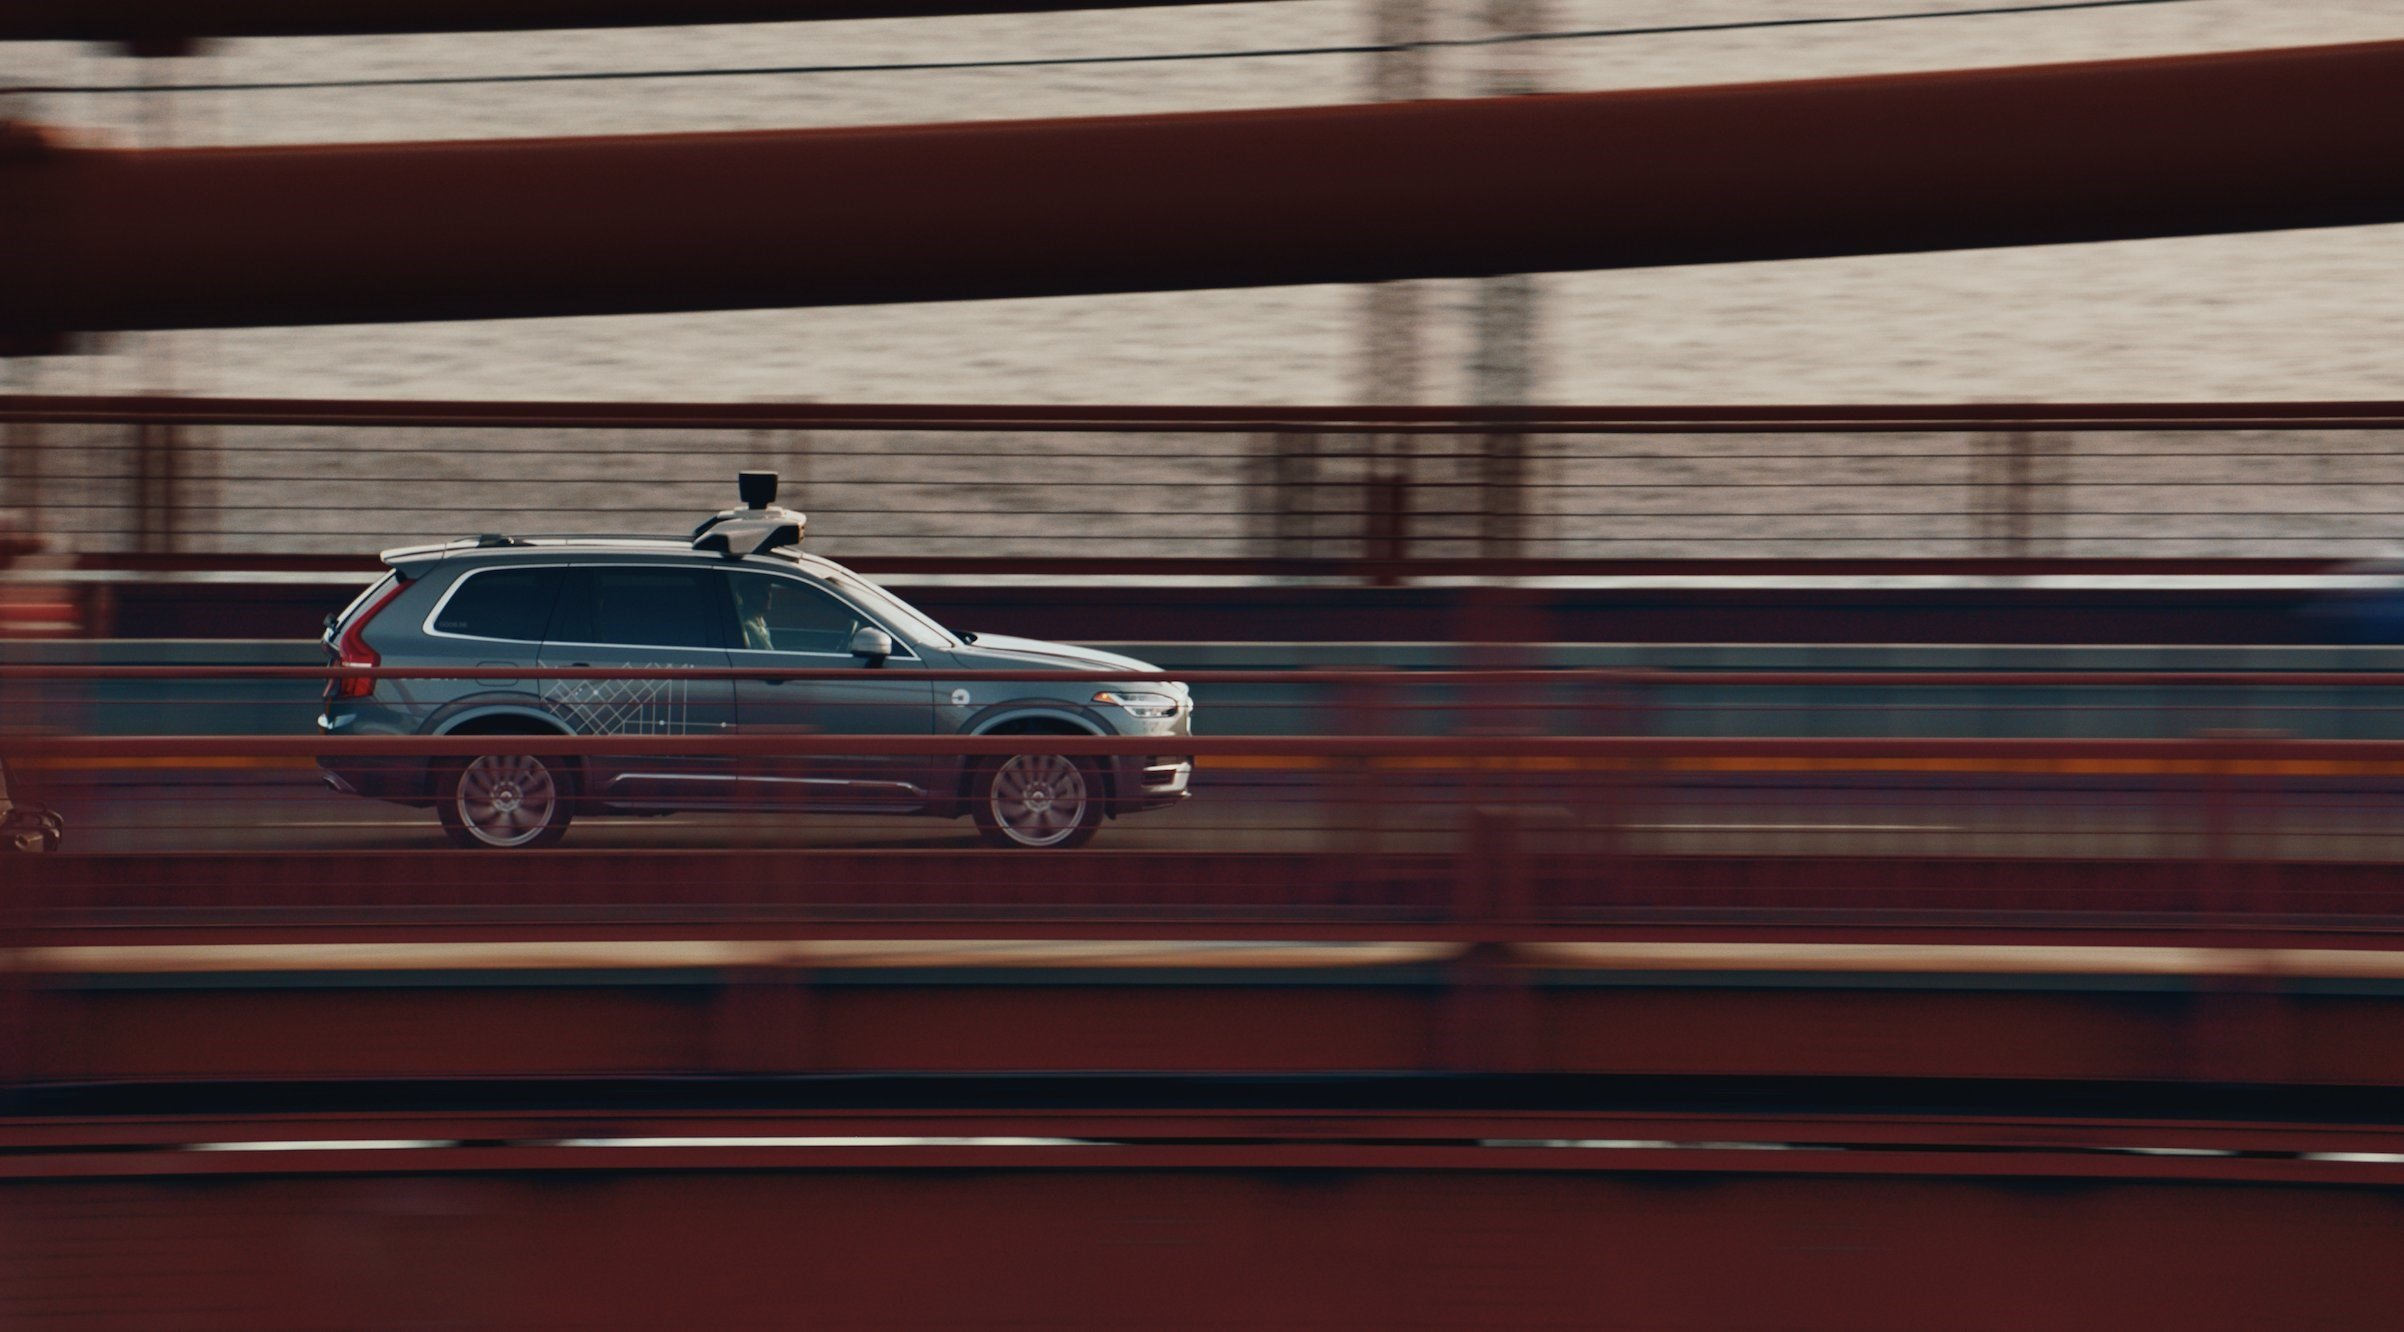 Uber orders up to 24000 Volvo SUVs for its self-driving fleet